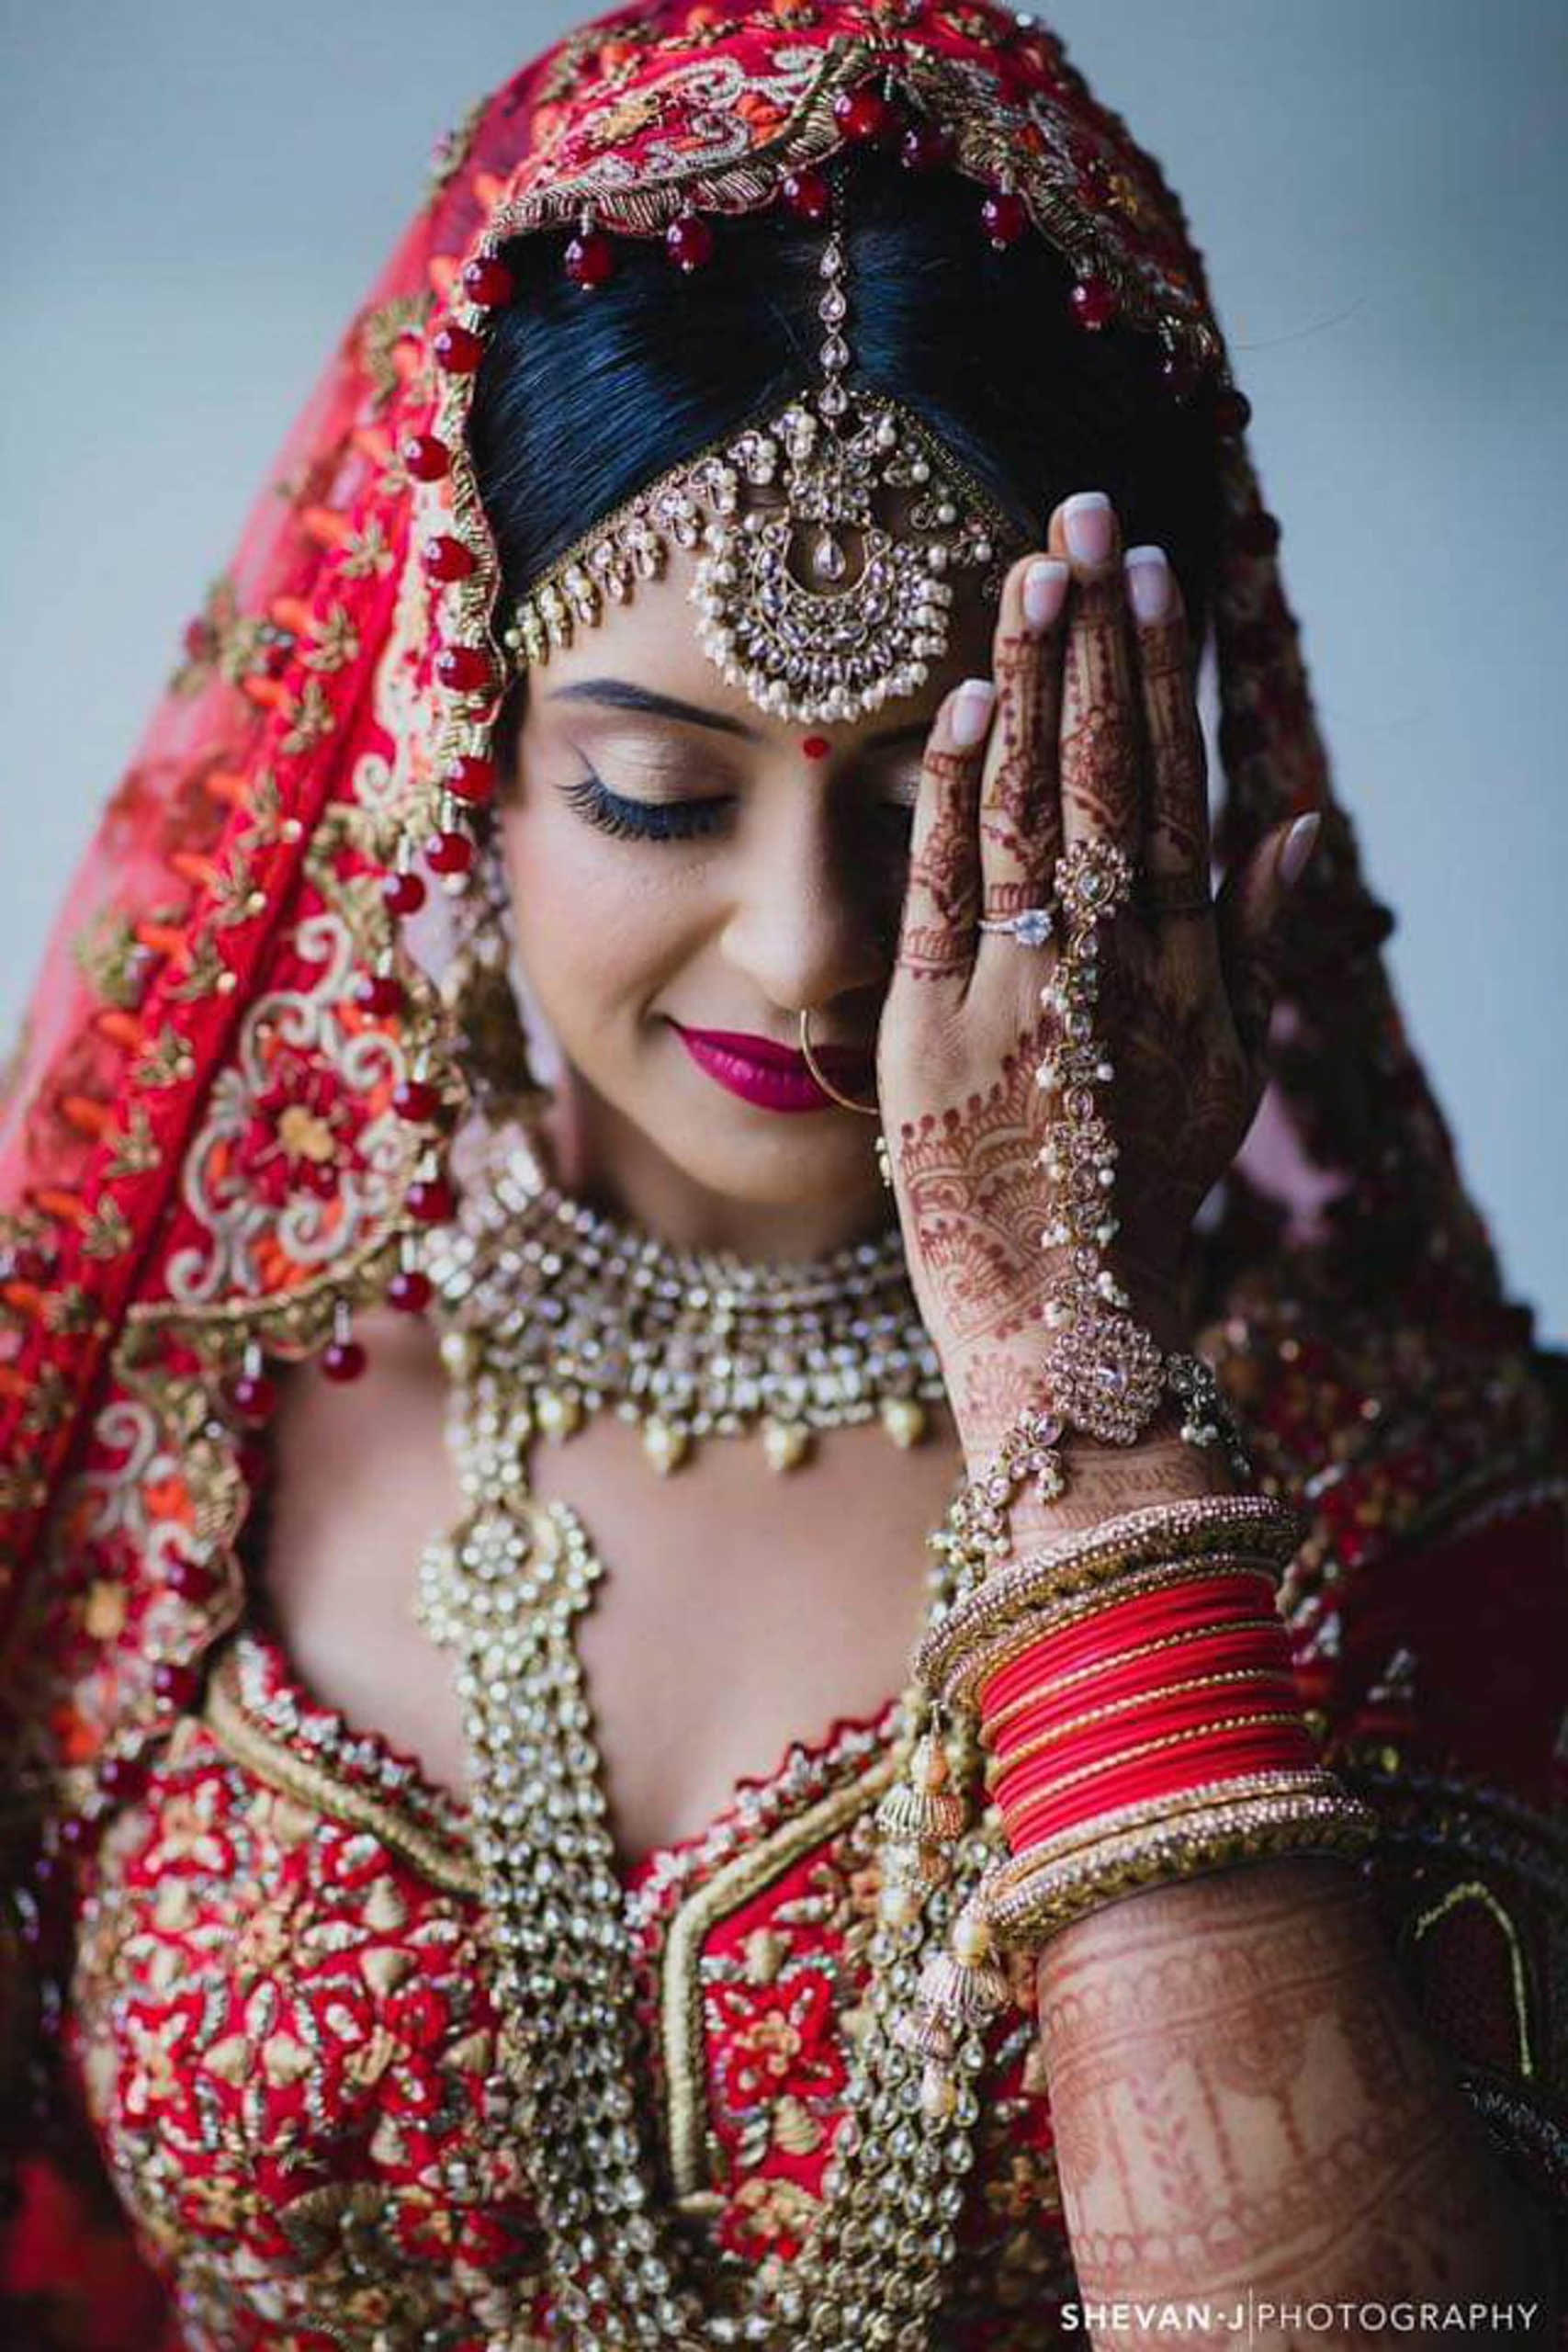 Professional Melbourne bridal henna and makeup artist, Fadziies Mehndi And Beauty is bringing joy to Indian brides. Here's one of her gorgeous Indian brides' in Melbourne on her wedding day. Photography captured by wedding photographer, Shevan J Photography.